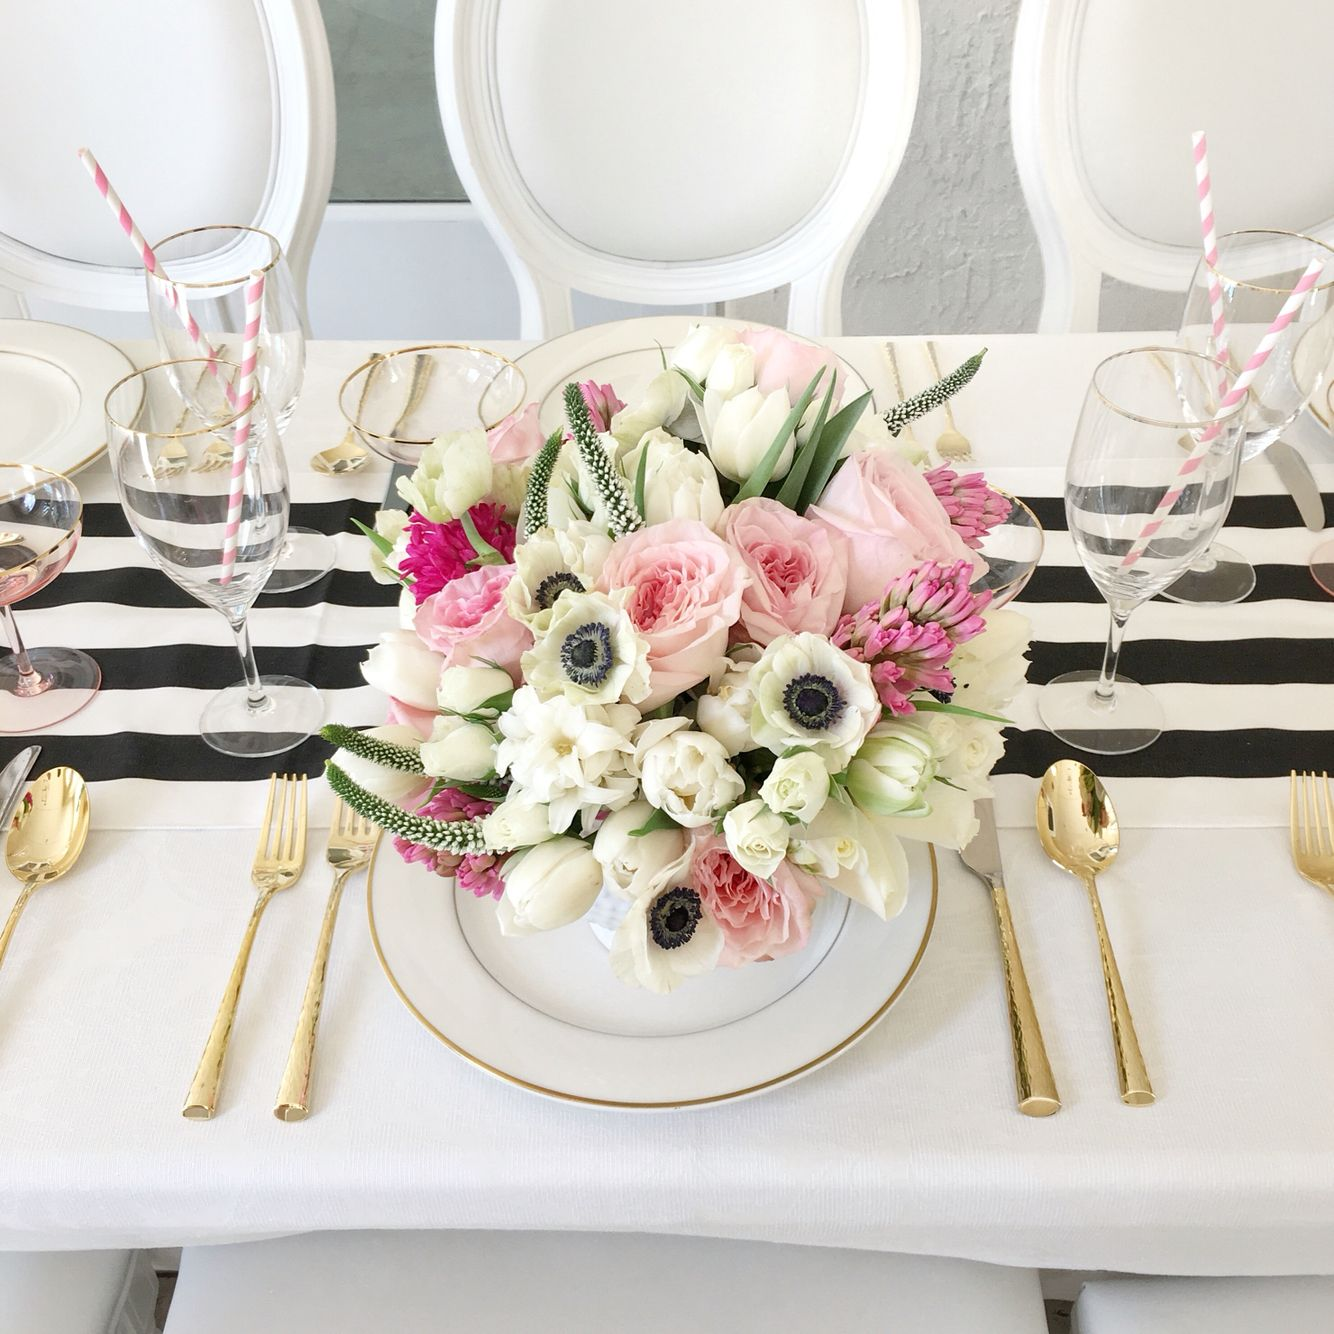 Garden roses, anemones, and more @FashionableHostess | Floral ...